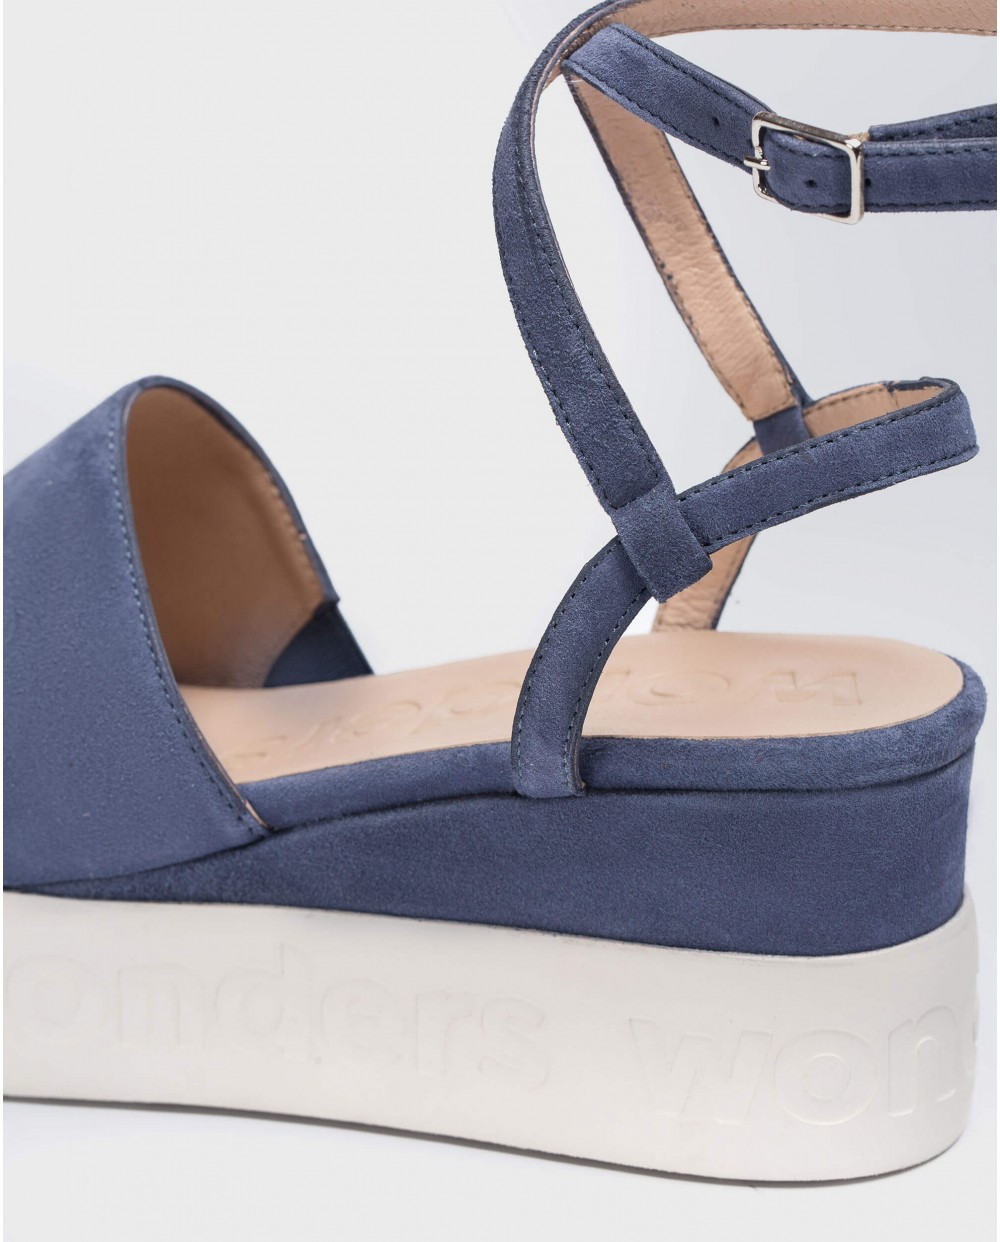 Wonders-Sandals-Sandal with double ankle strap